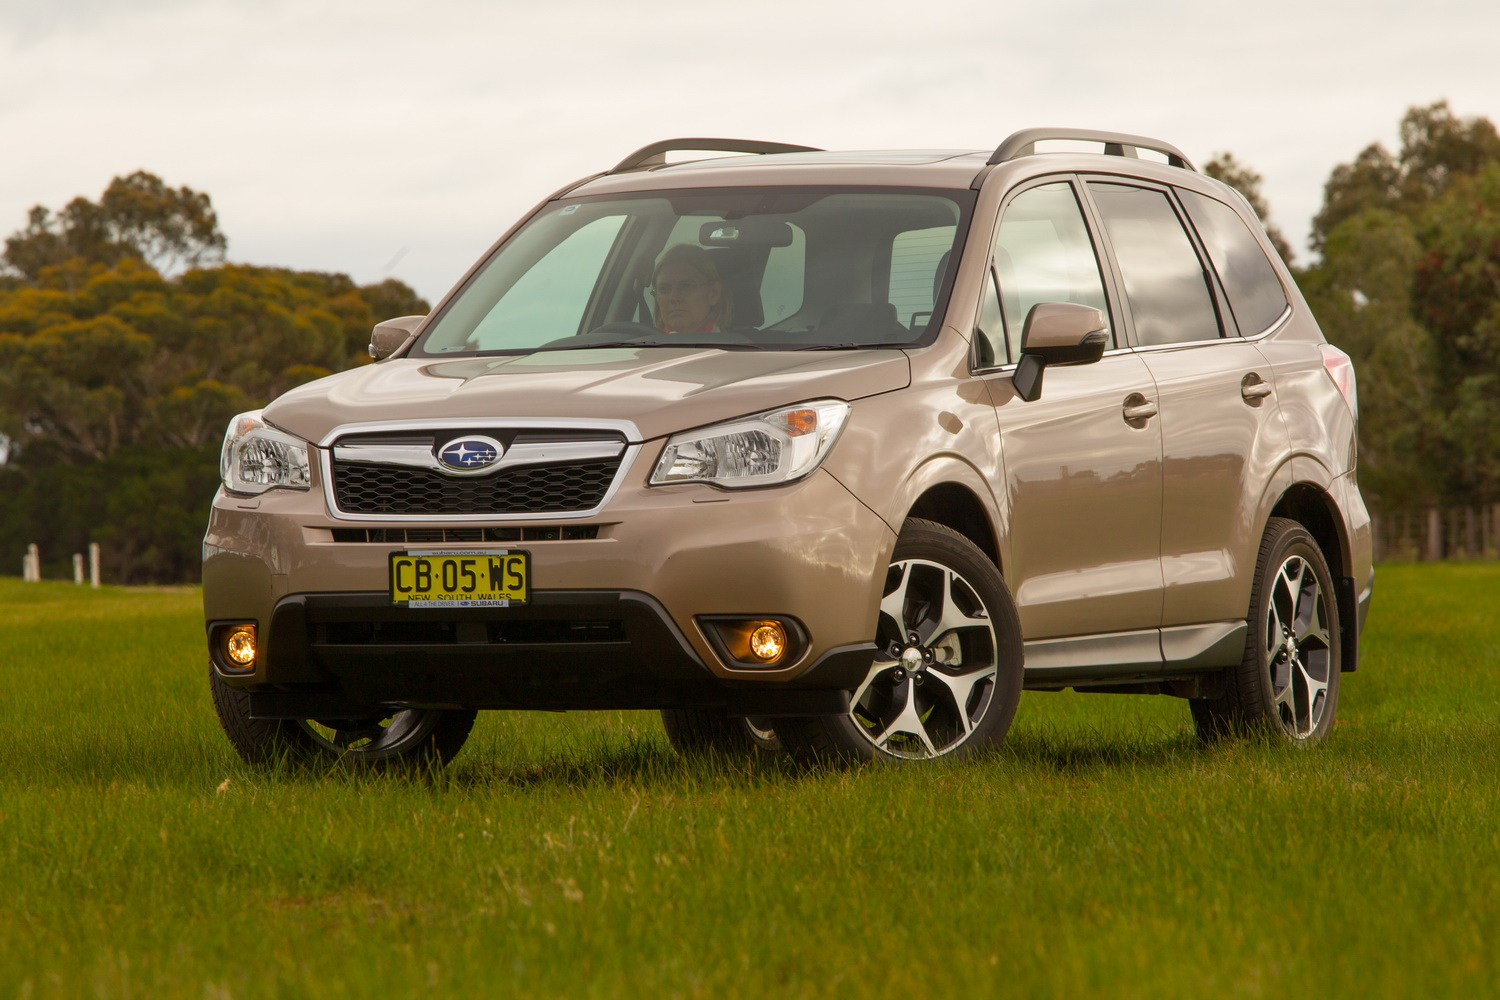 2015 subaru forester diesel cvt review practical motoring. Black Bedroom Furniture Sets. Home Design Ideas